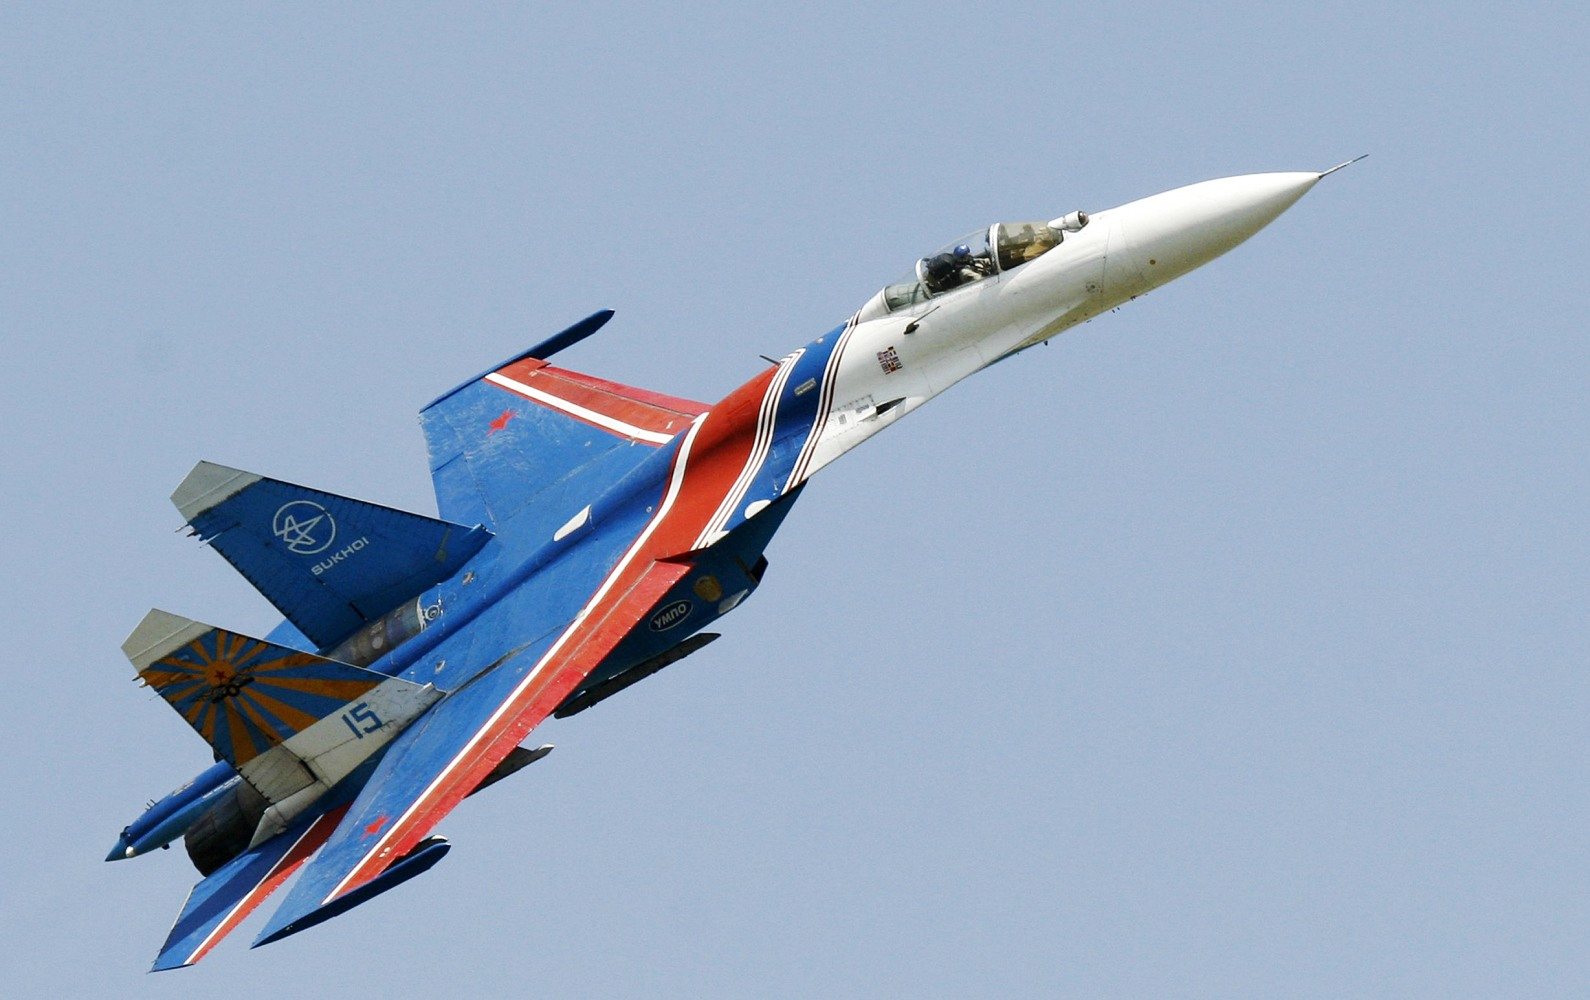 Russian jet buzzed US Navy plane over Black Sea